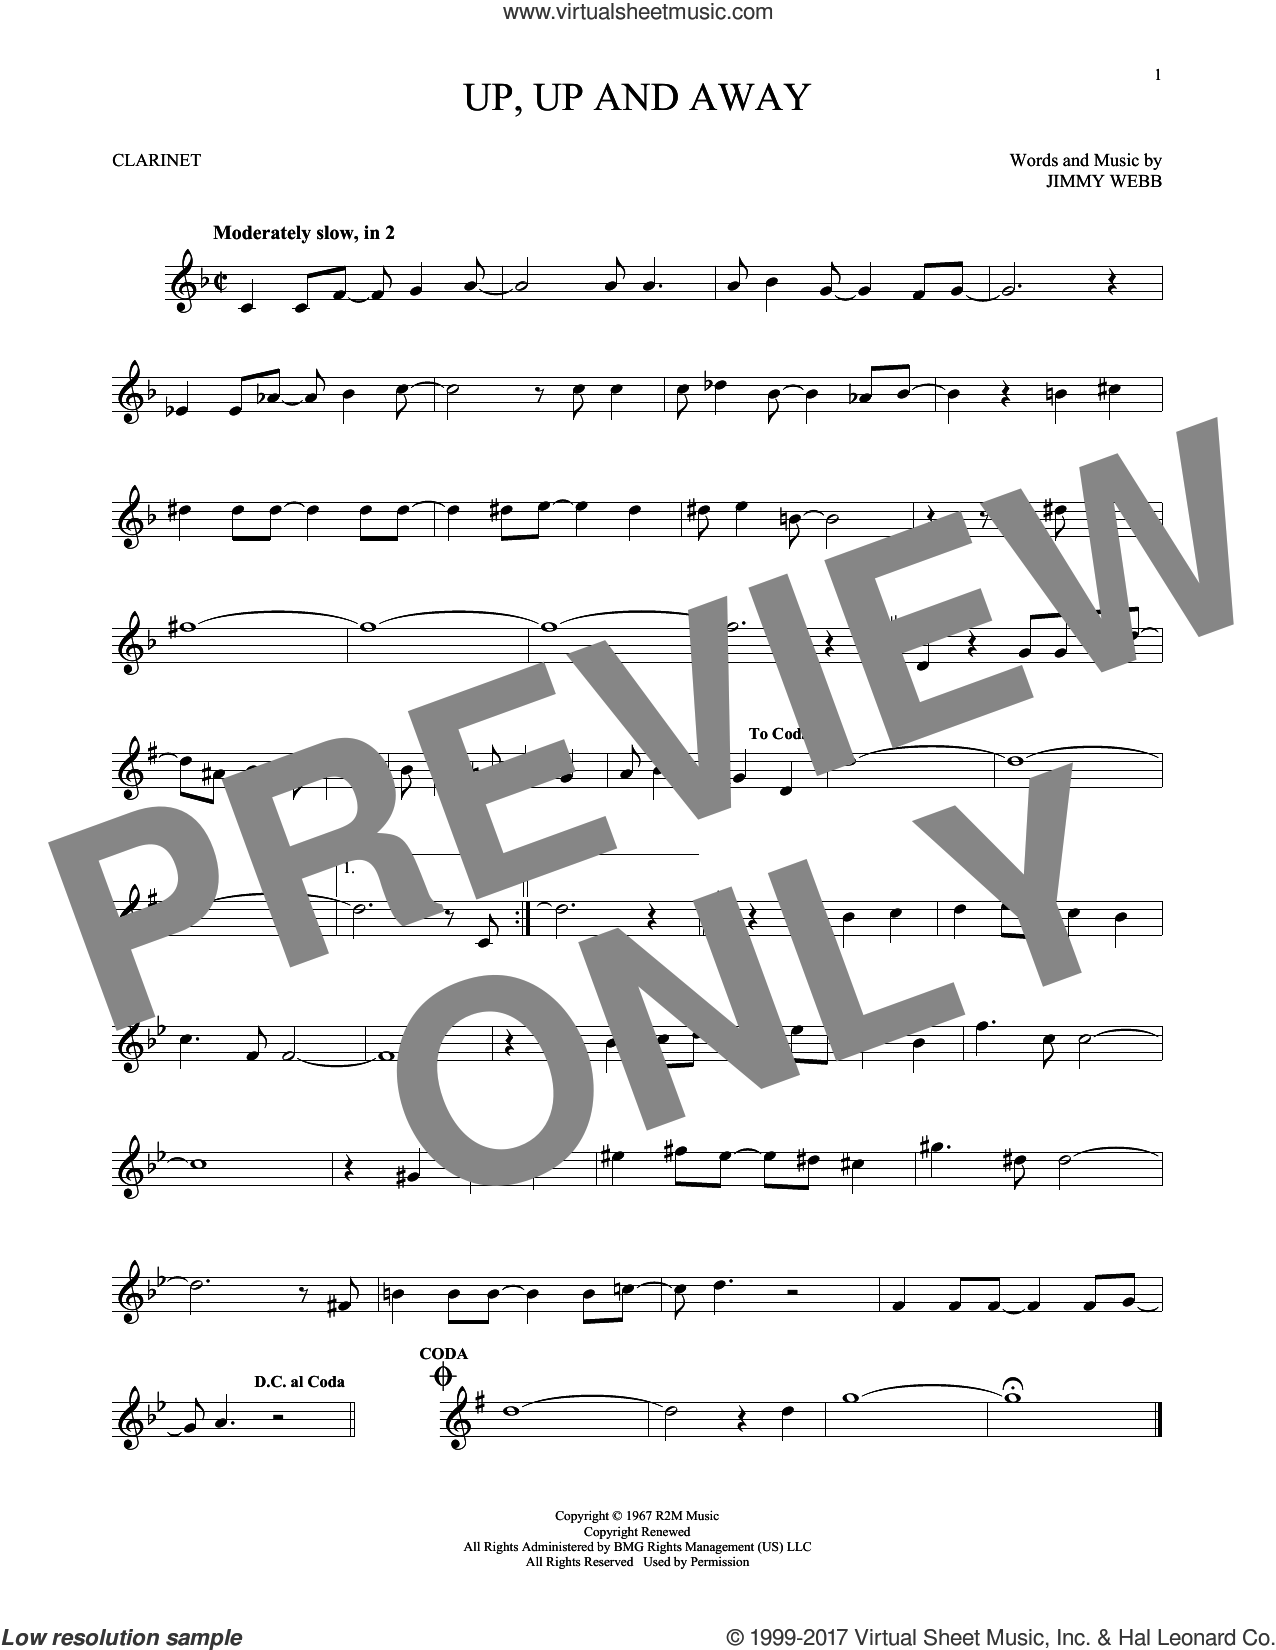 Up, Up And Away sheet music for clarinet solo by The Fifth Dimension and Jimmy Webb, intermediate skill level